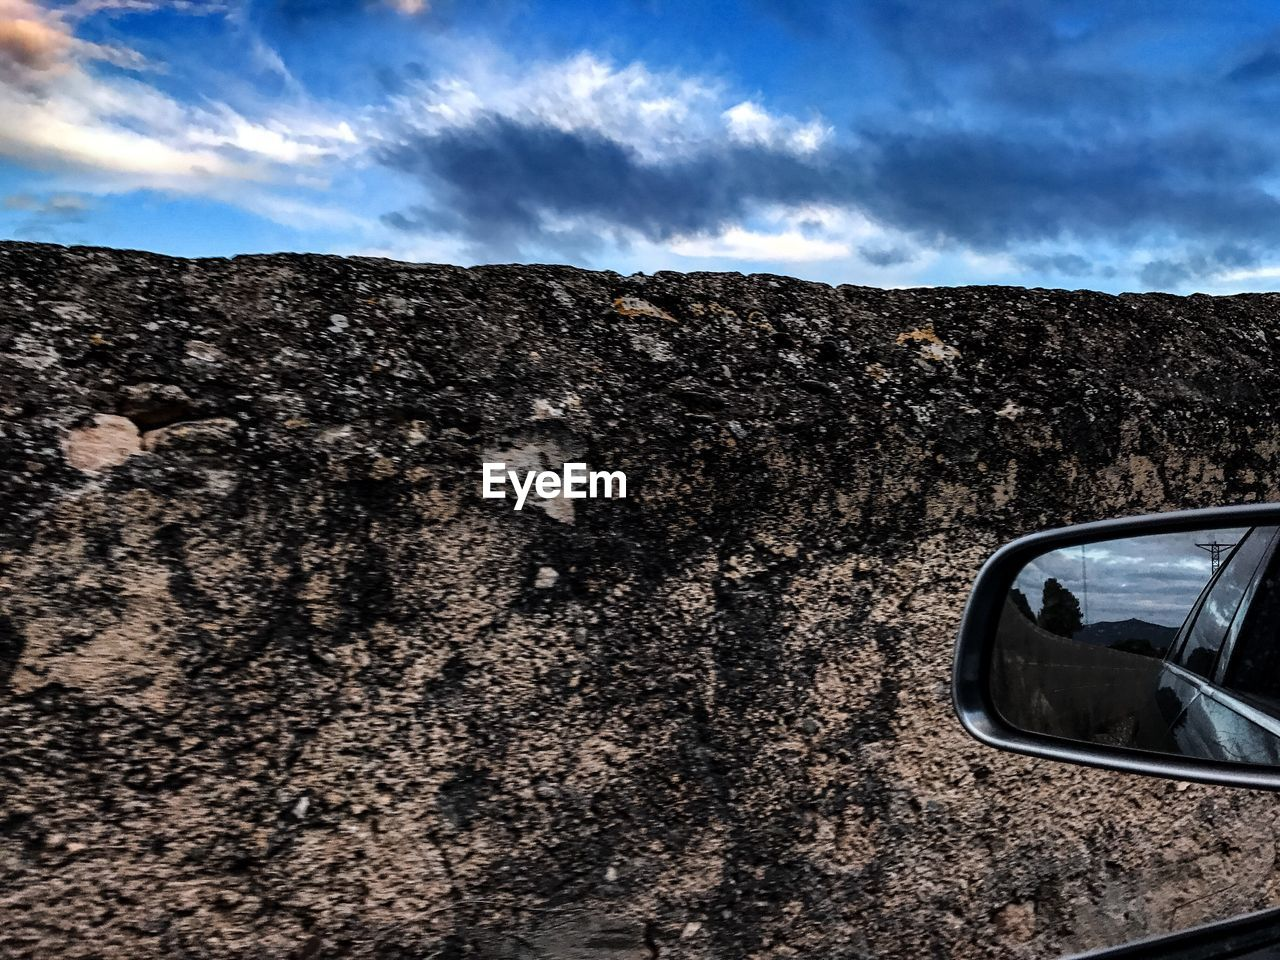 car, sky, land vehicle, side-view mirror, transportation, cloud - sky, mode of transport, outdoors, day, mountain, nature, landscape, no people, vehicle mirror, beauty in nature